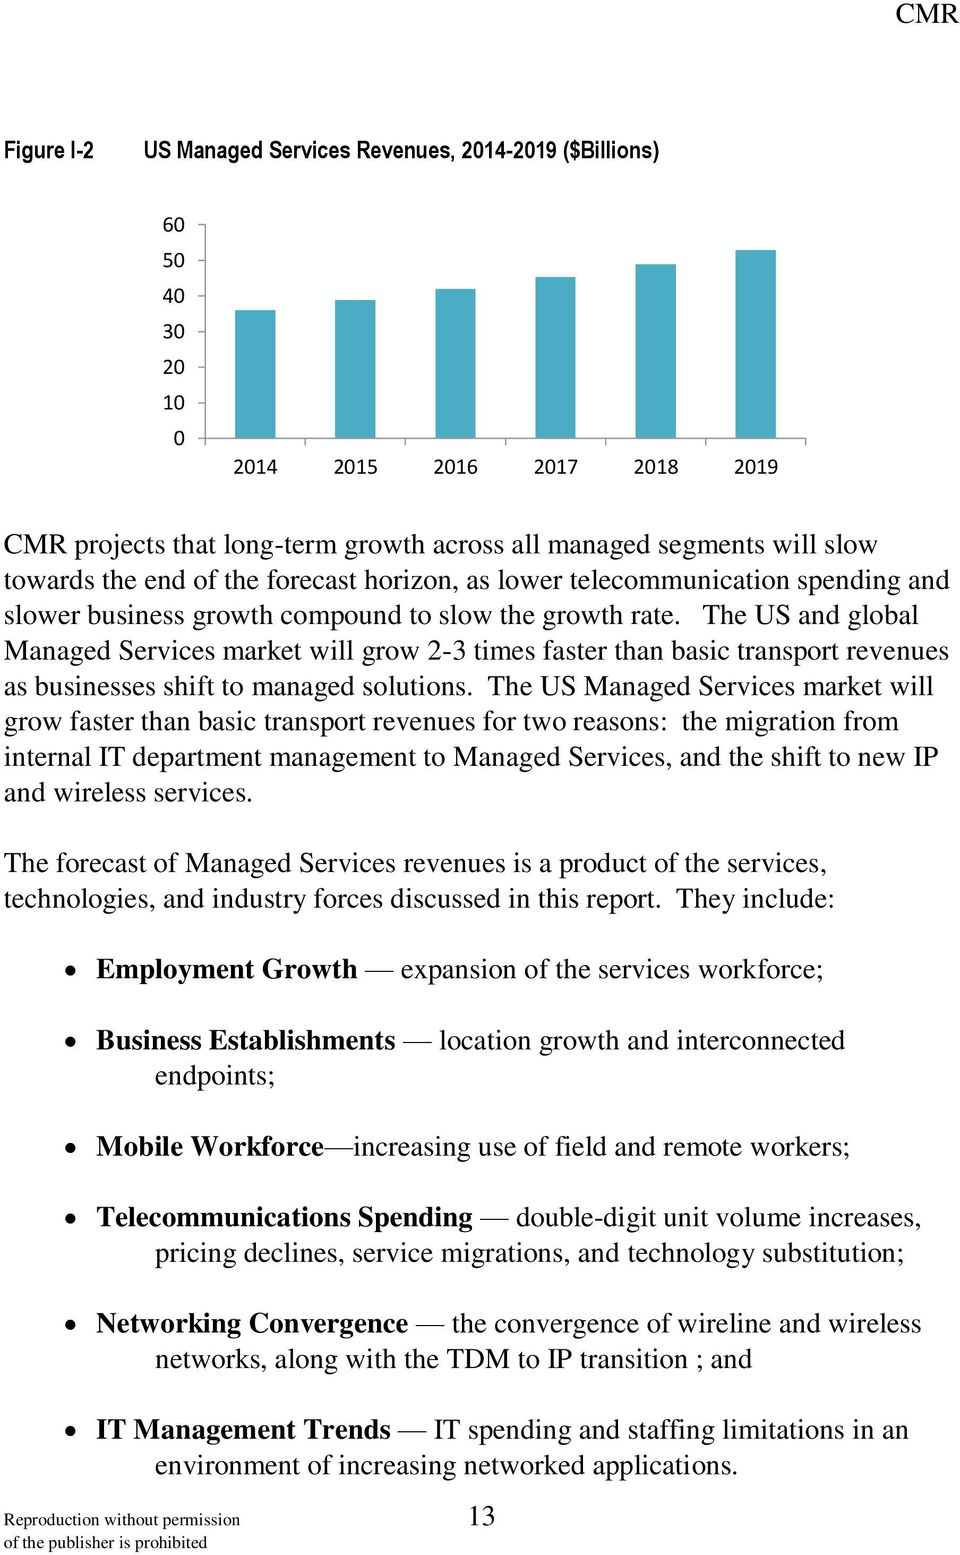 The US and global Managed Services market will grow 2-3 times faster than basic transport revenues as businesses shift to managed solutions.